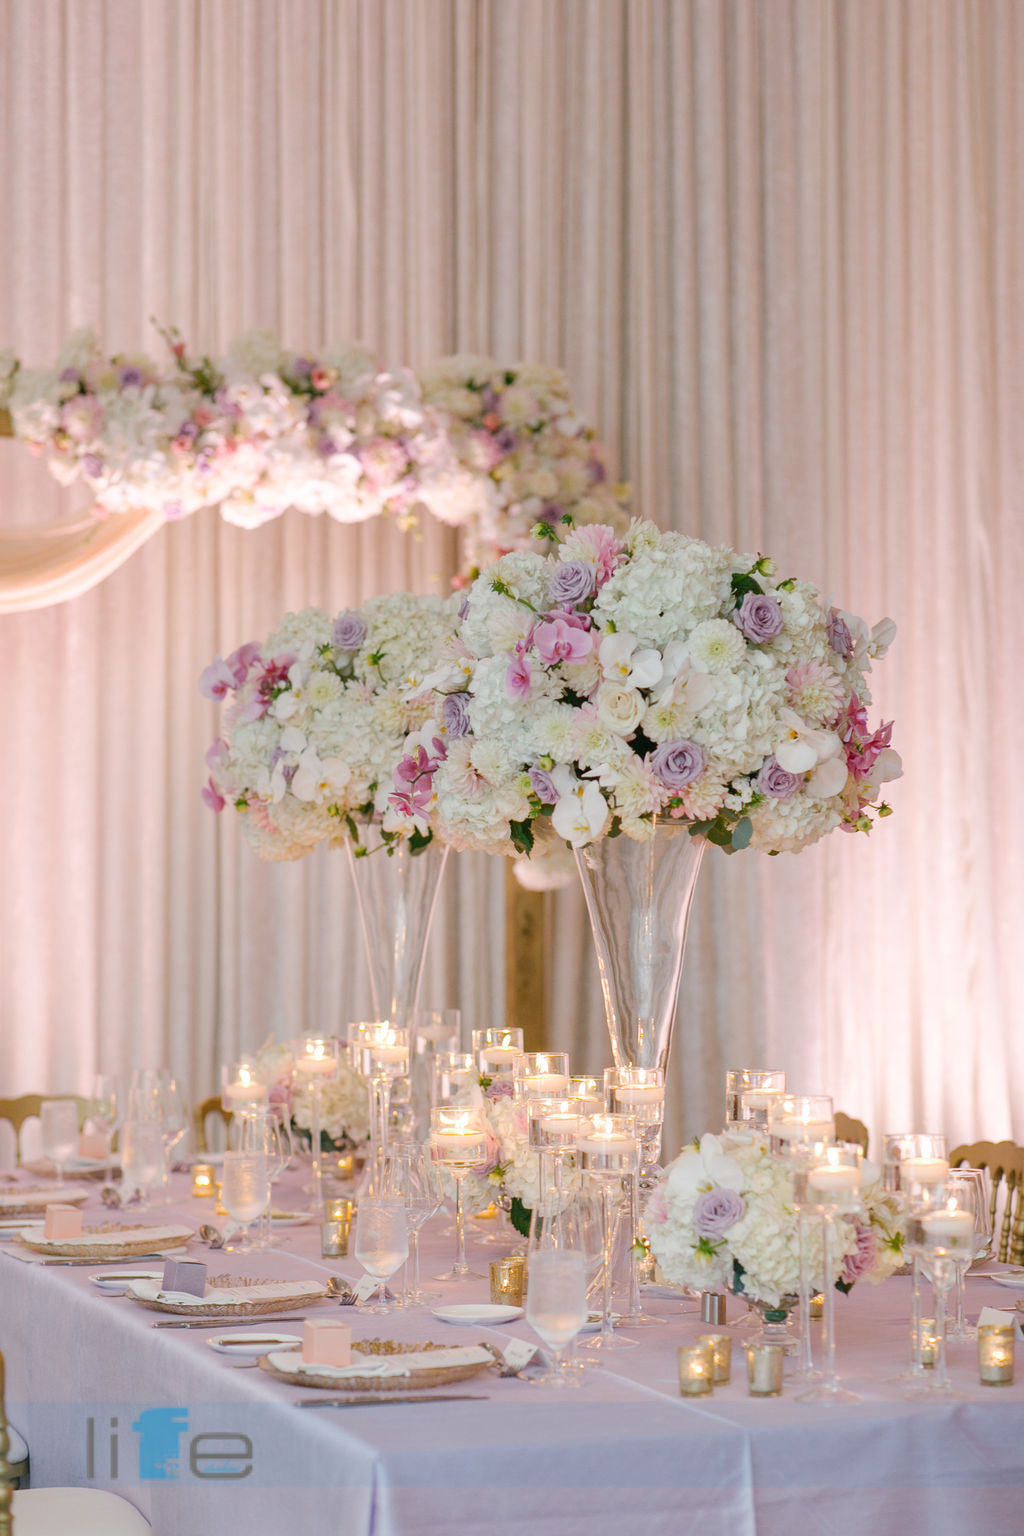 Vancouver Wedding Planner Blush Wedding - Fairmont Pacific Rim Wedding19.jpg